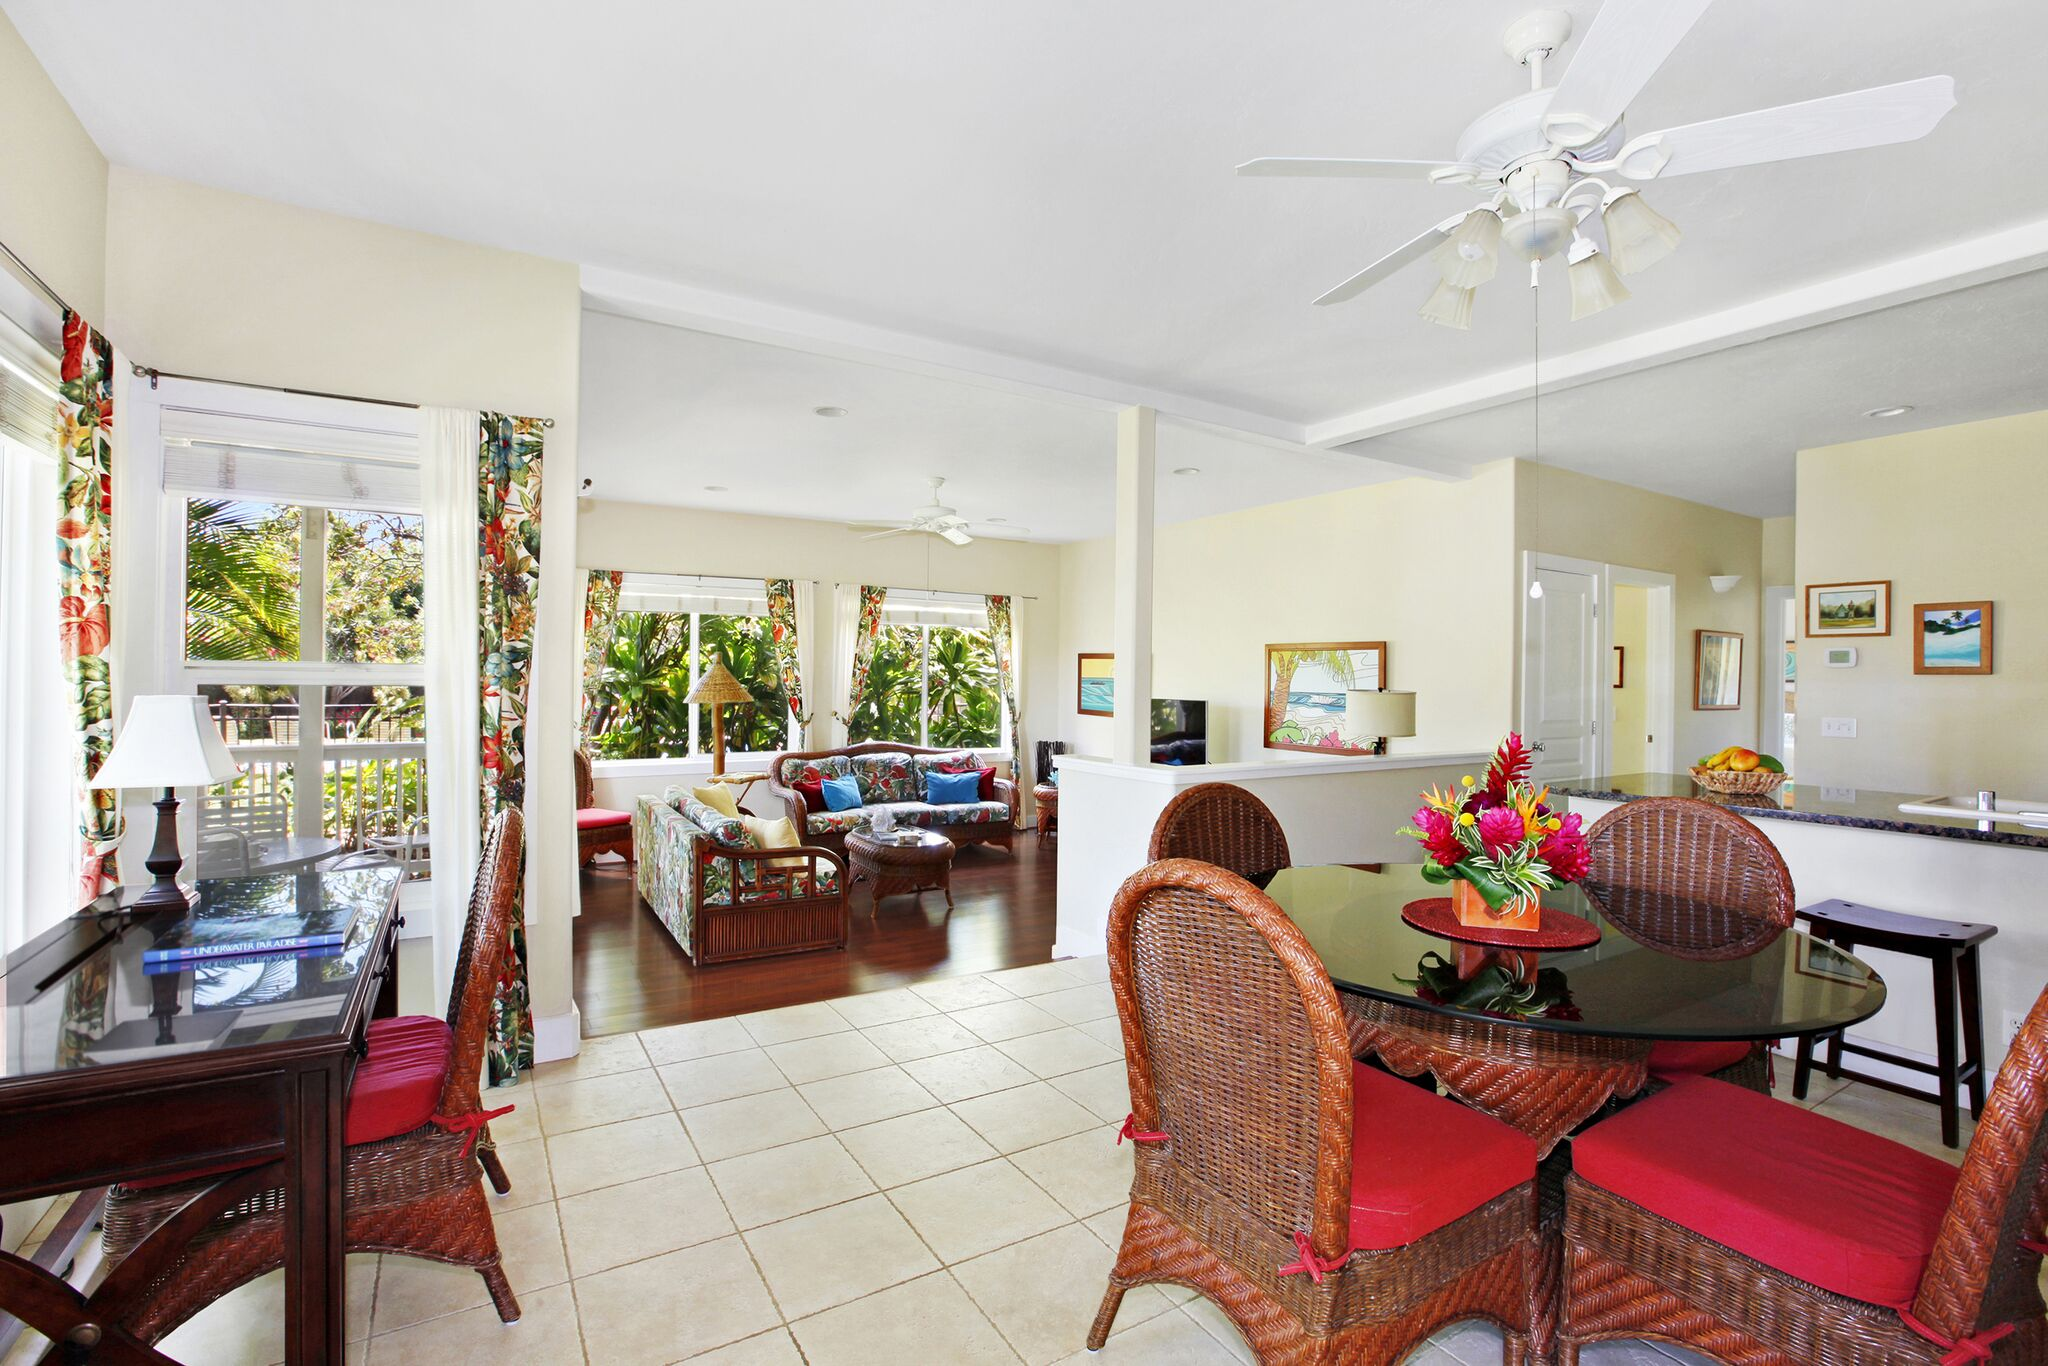 Well Appointed Poipu Getaway with Tropical Hawaiian Décor Throughout